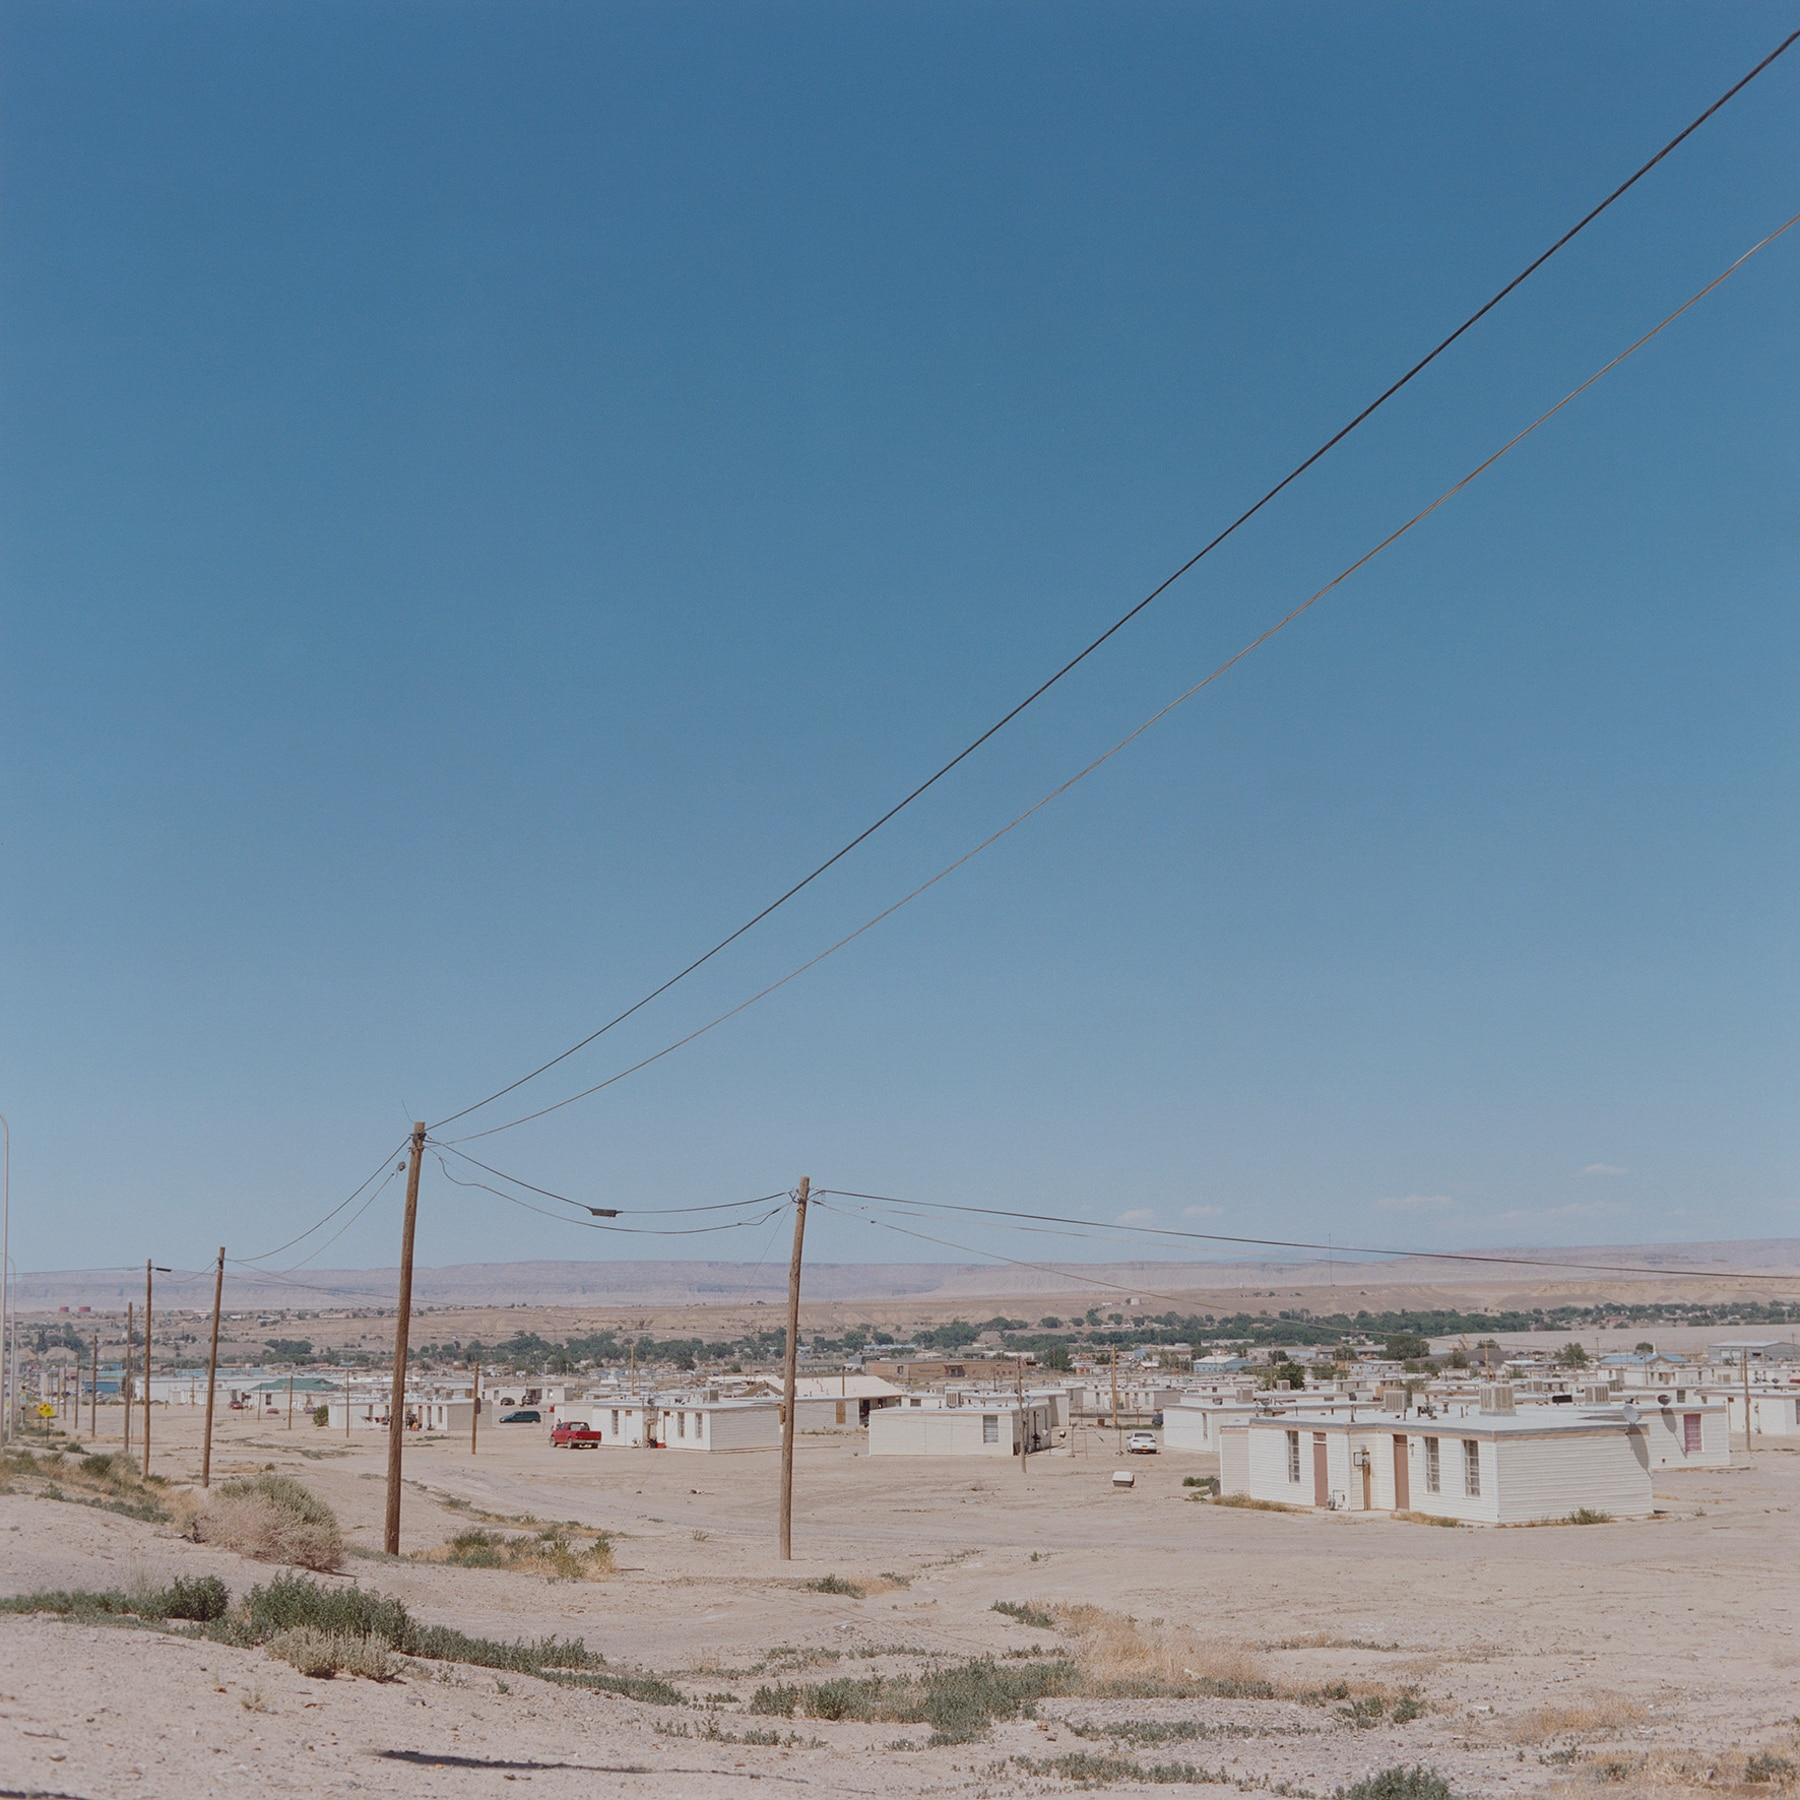 Short white buildings and utility poles and electrical wires in the desert (© Carlotta Cardana/The Red Road Project)